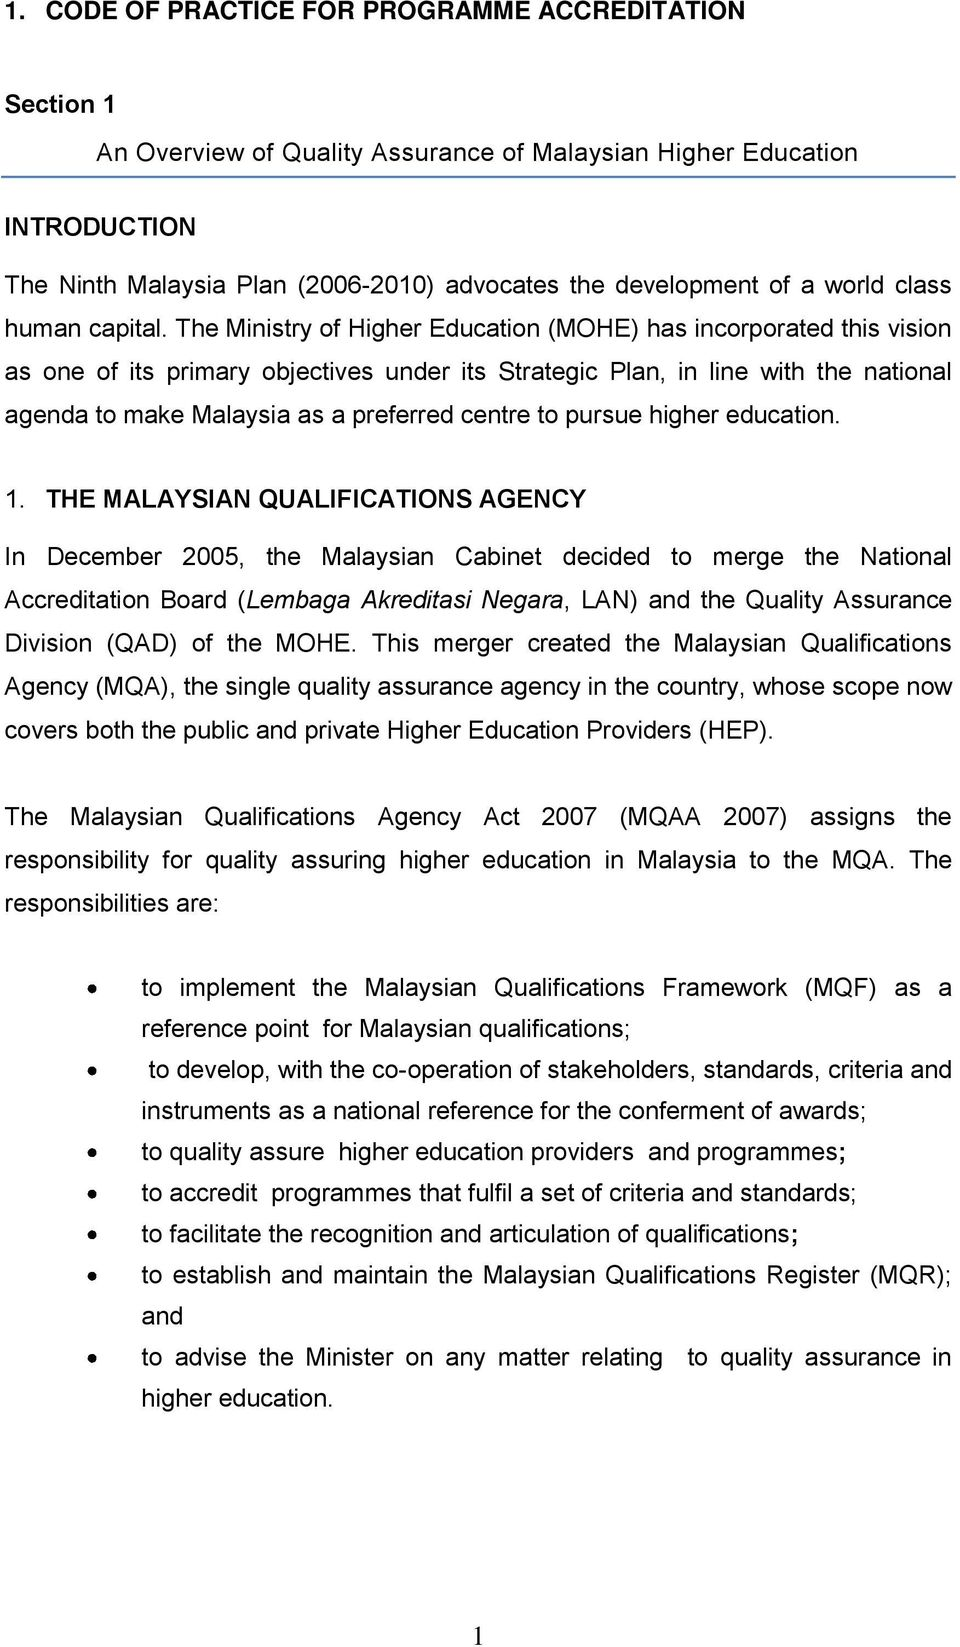 The Ministry f Higher Educatin (MOHE) has incrprated this visin as ne f its primary bjectives under its Strategic Plan, in line with the natinal agenda t make Malaysia as a preferred centre t pursue